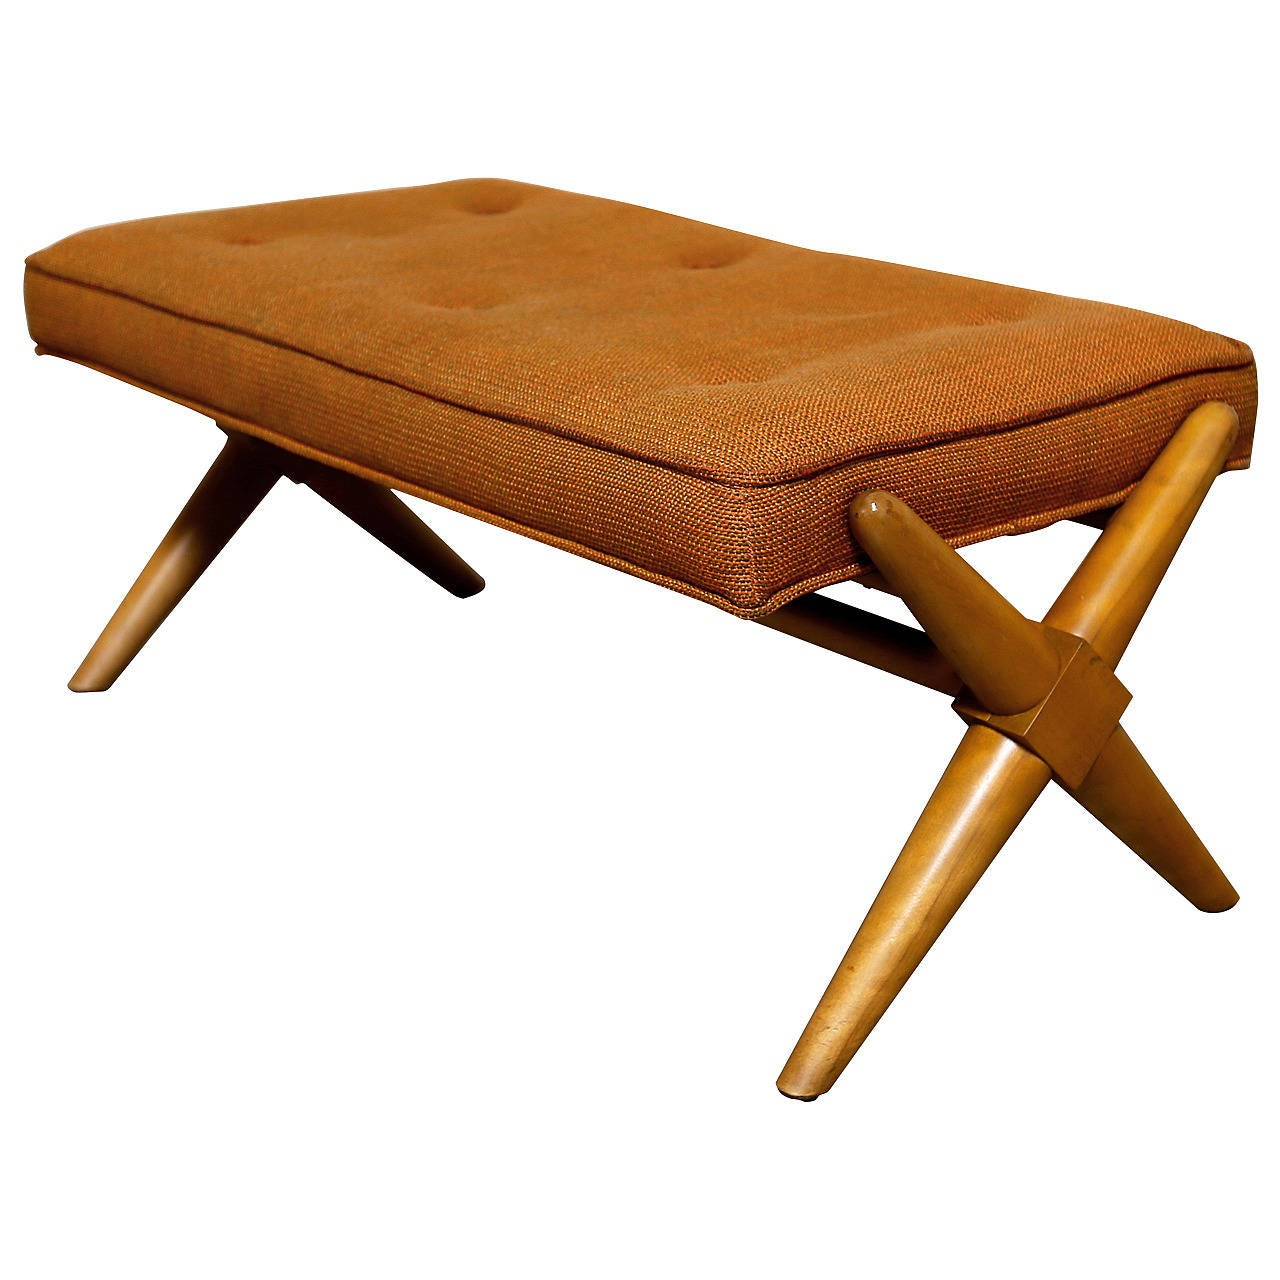 T H Robsjohn Gibbings X Base Trestle Bench For Widdicomb At 1stdibs